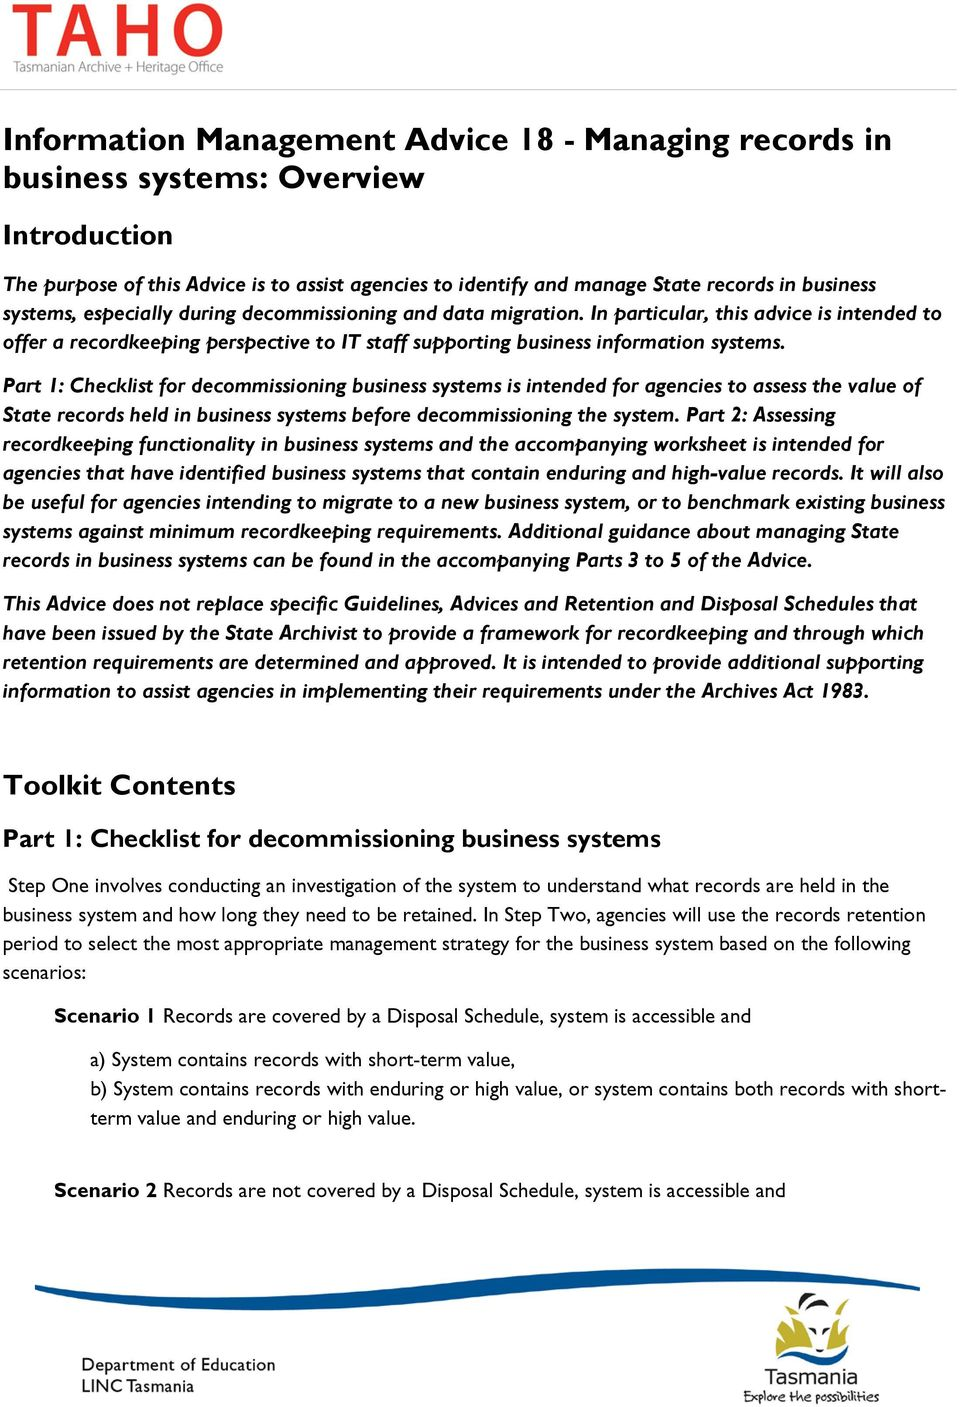 Part 1: Checklist for decommissioning business systems is intended for agencies to assess the value of State records held in business systems before decommissioning the system.